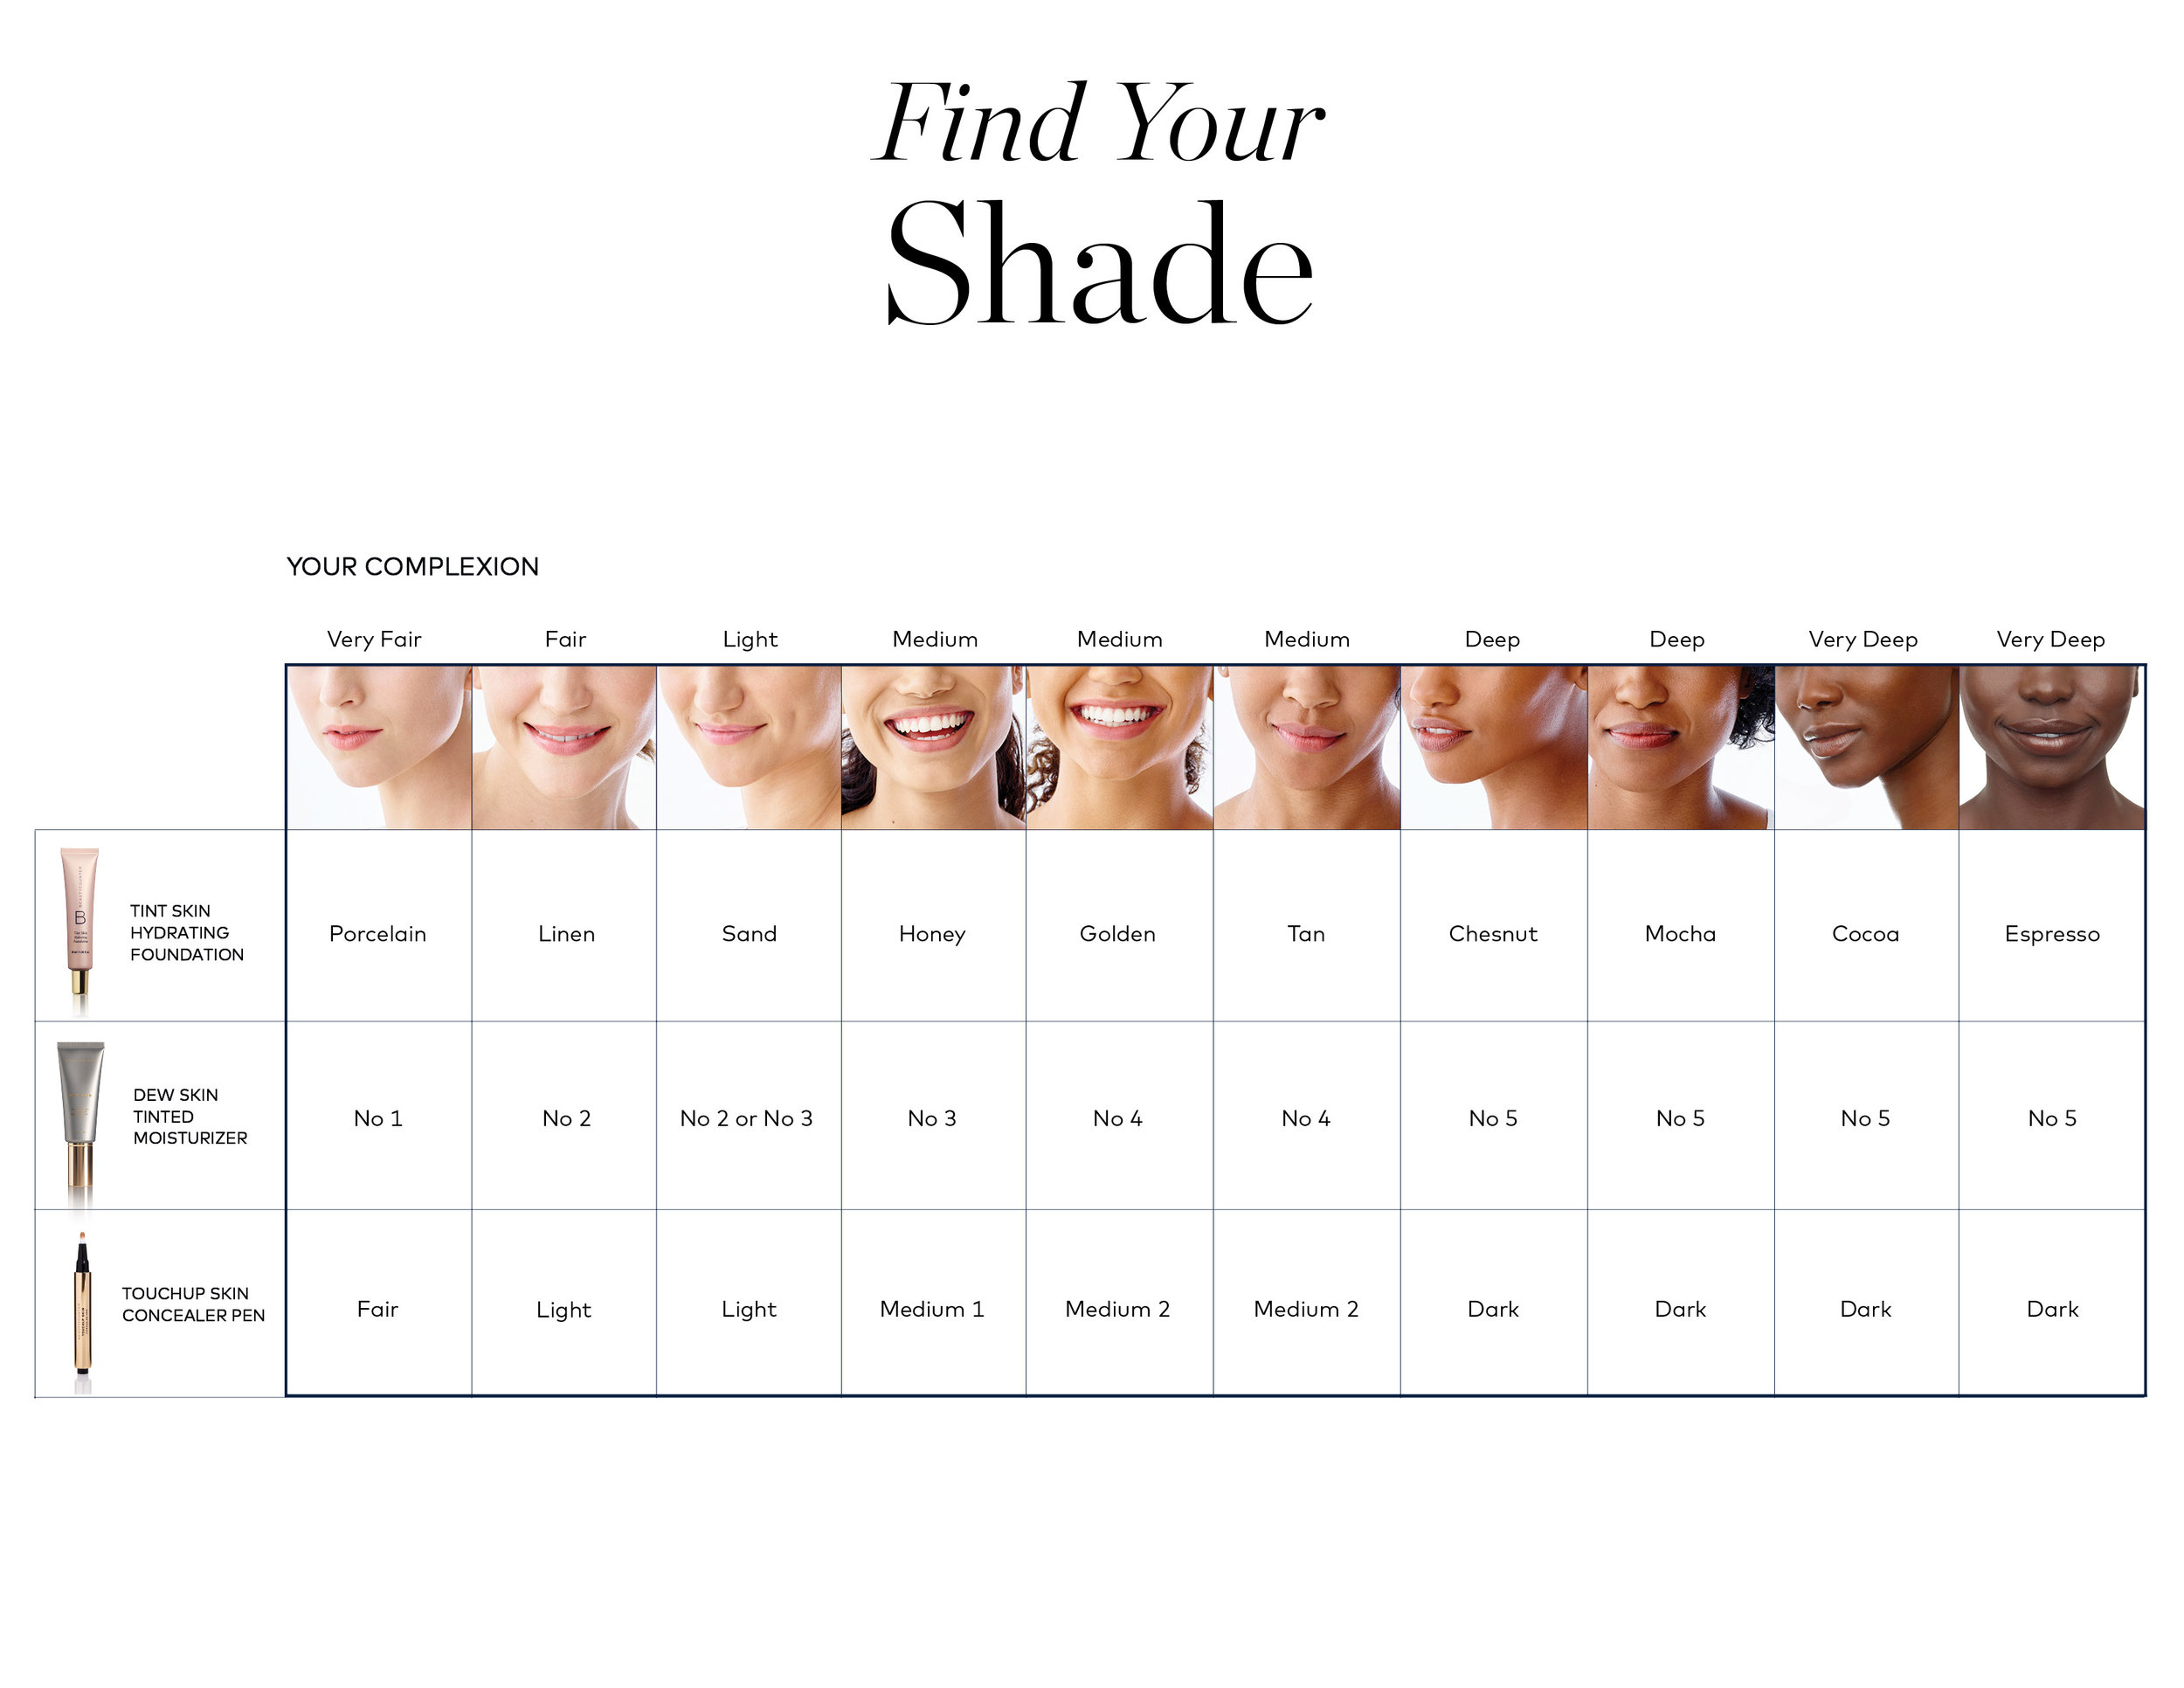 Find_Your_Shade.jpg